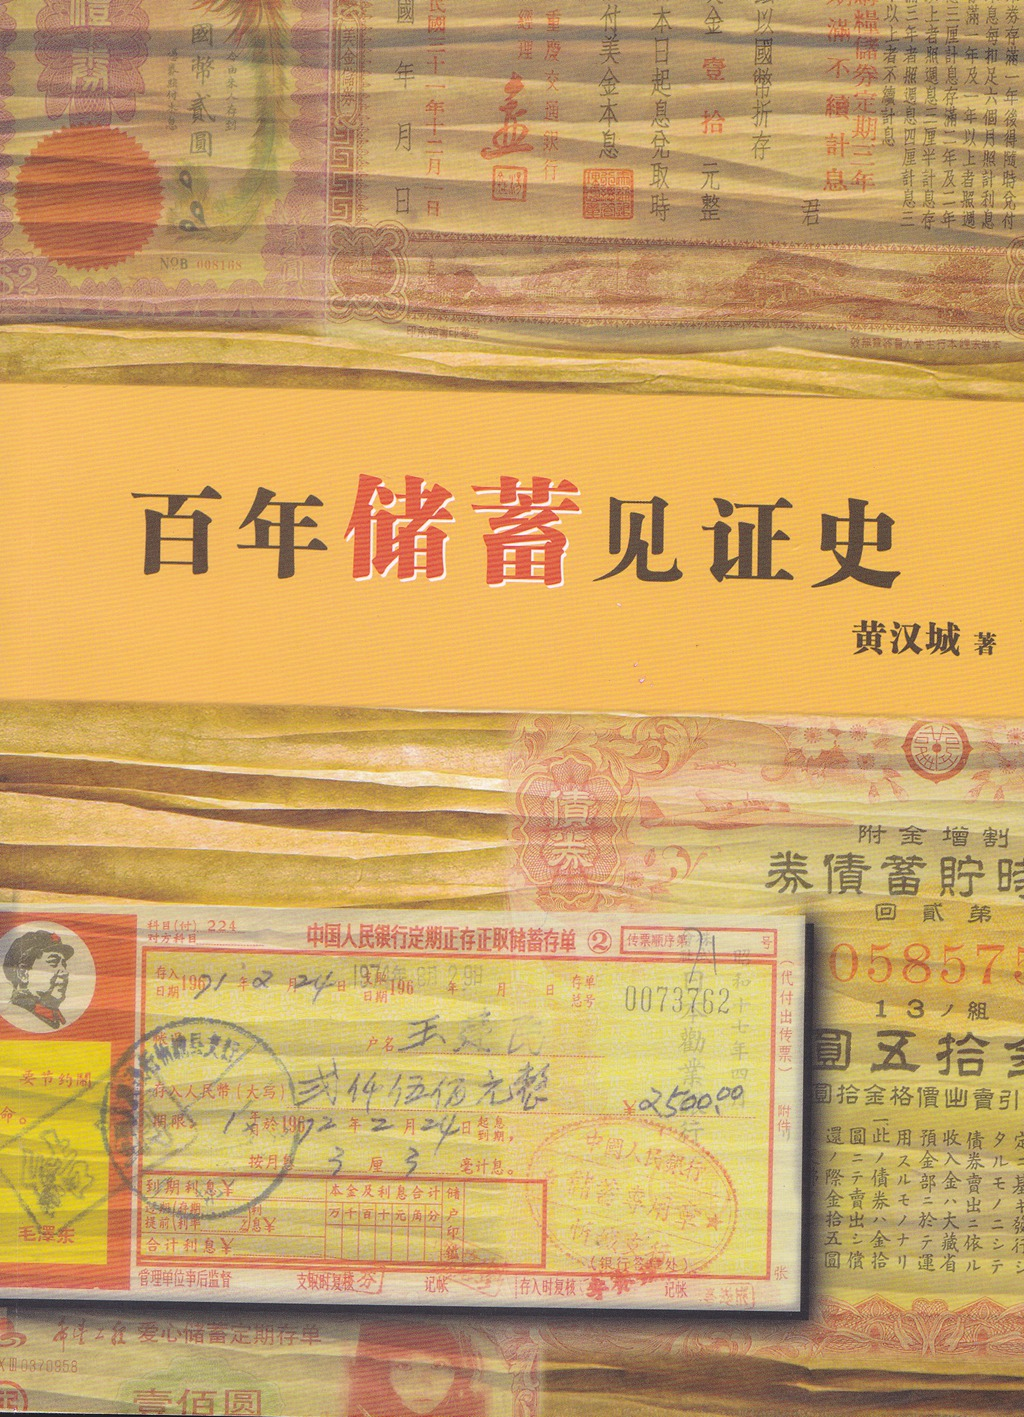 F2619, Research of 100 Years China's Deposit Receipts, 2010